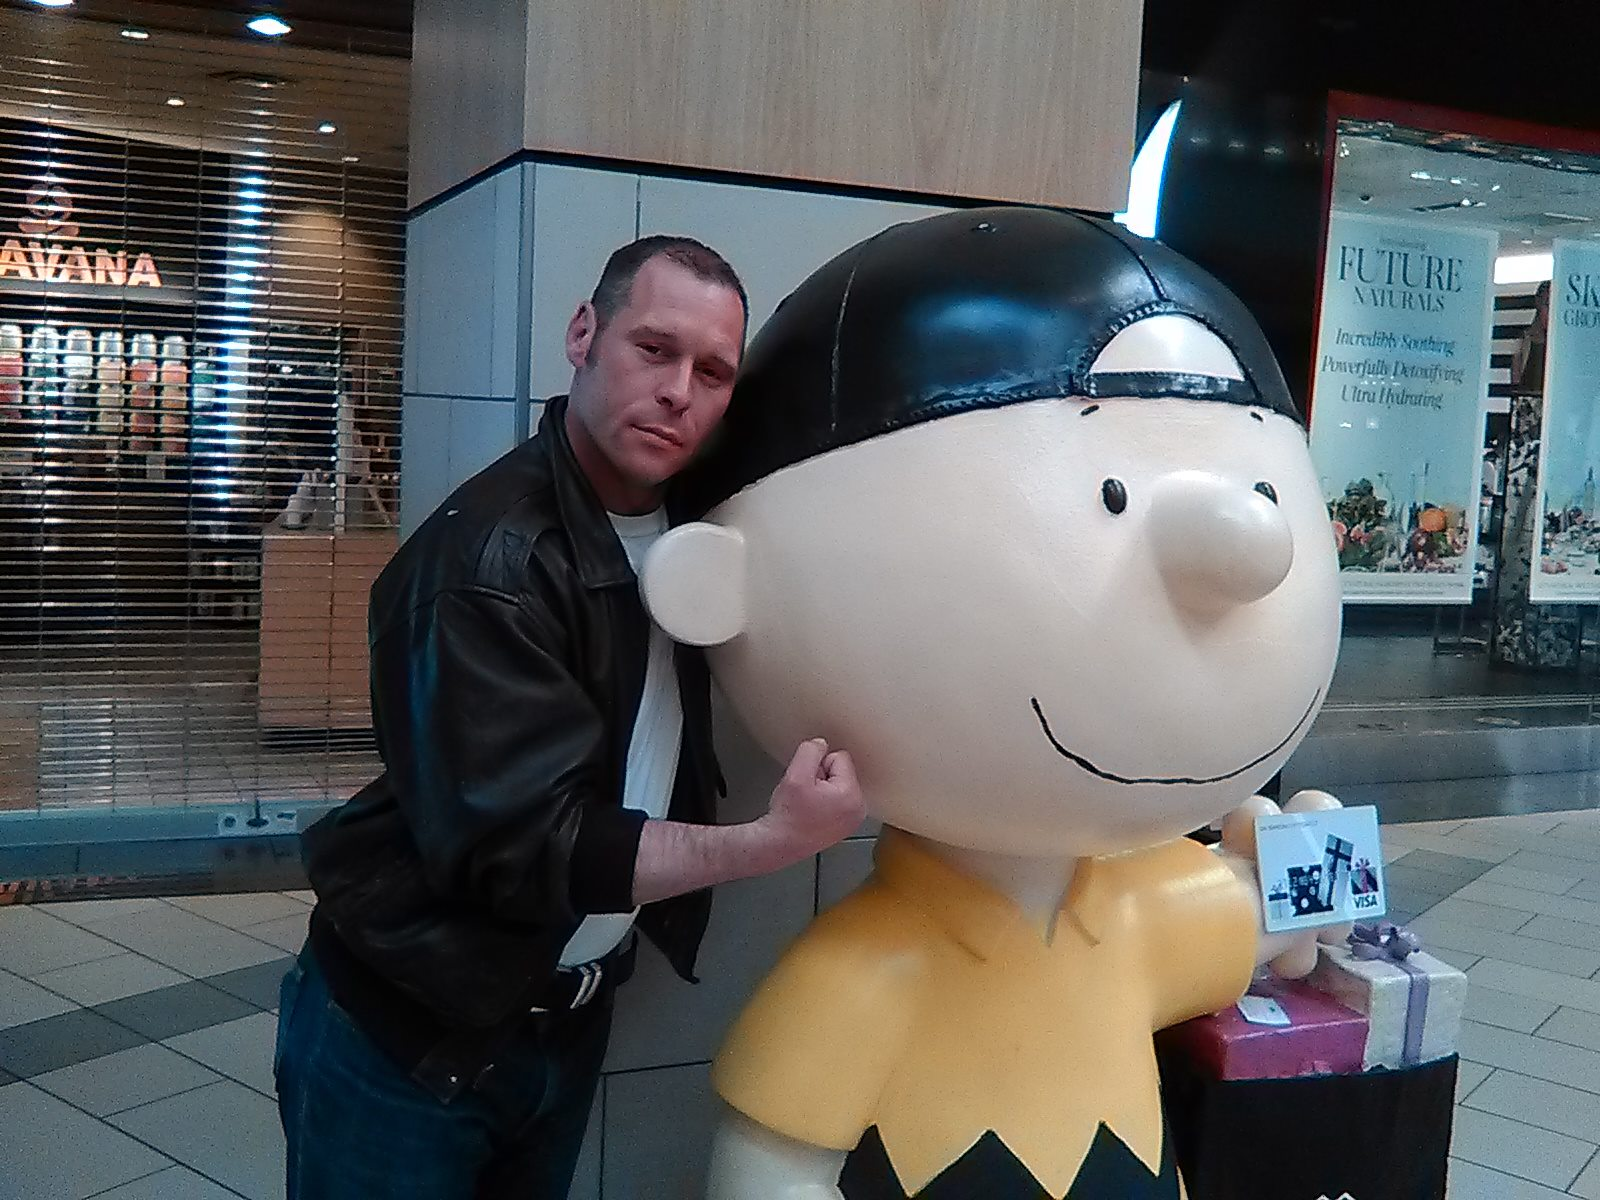 Barry, a white man in a leather jacket, stands next to a larger-than-life-sized statue of Charlie Brown in a backwards baseball cap. Barry is holding his fist against the statue's chin.